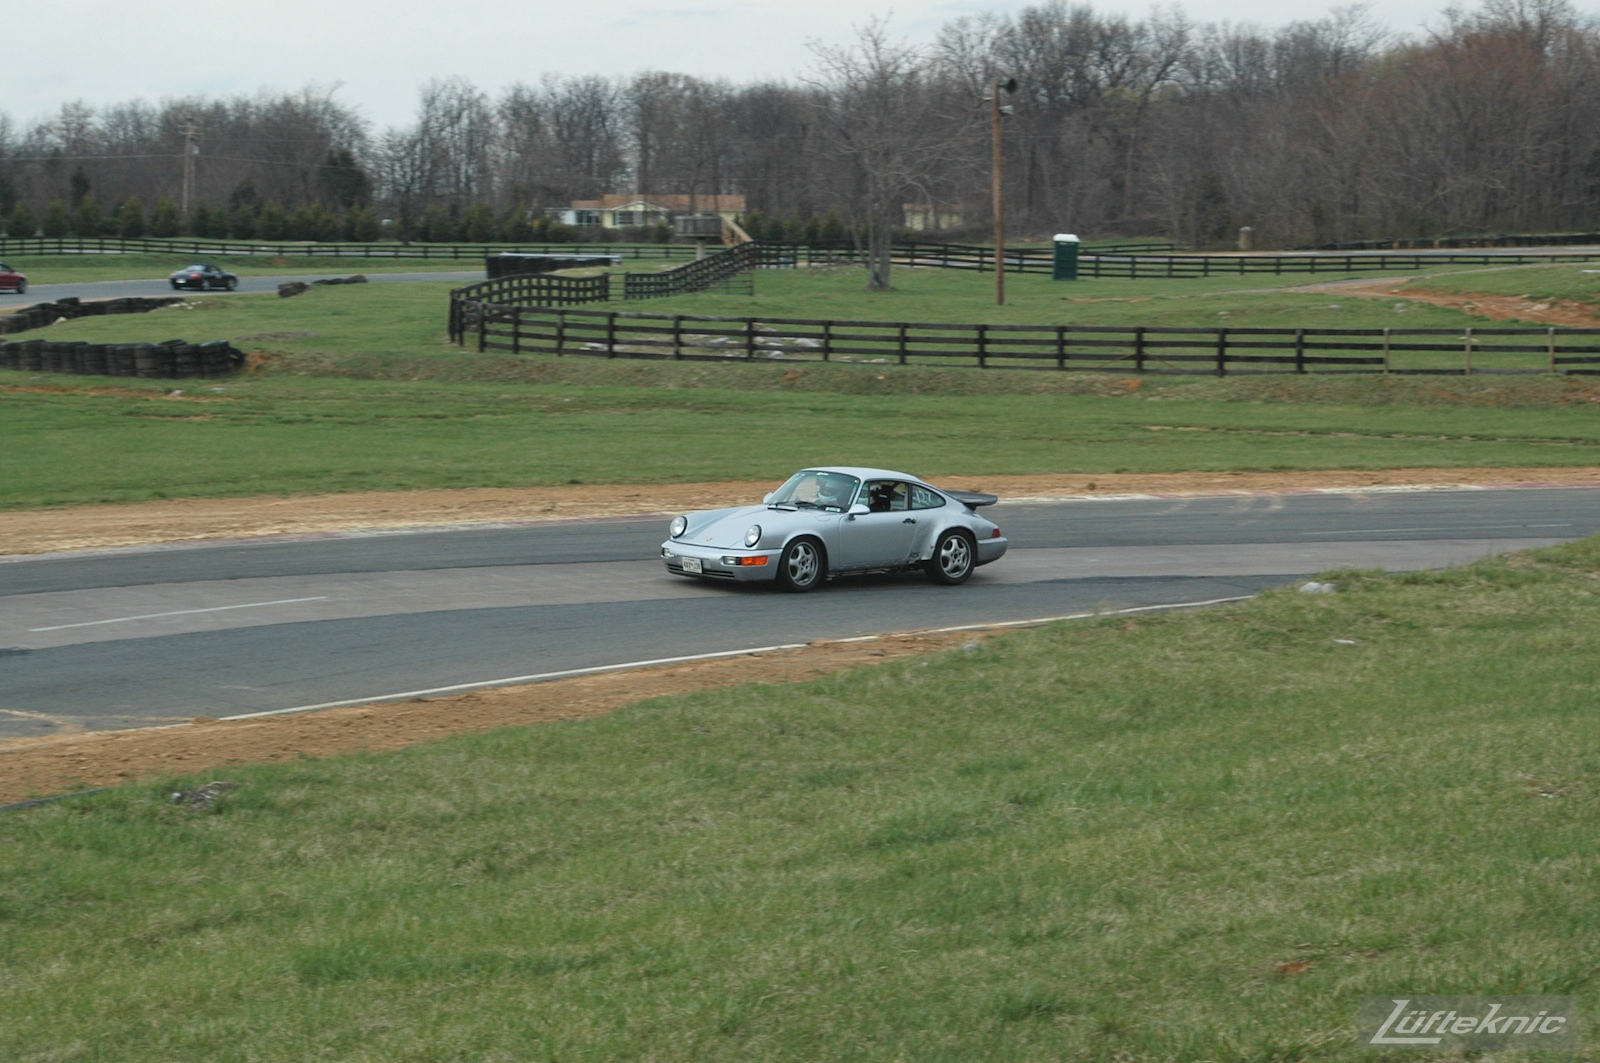 The 964 RS America on track for the first time after the accident going around a left hand corner.